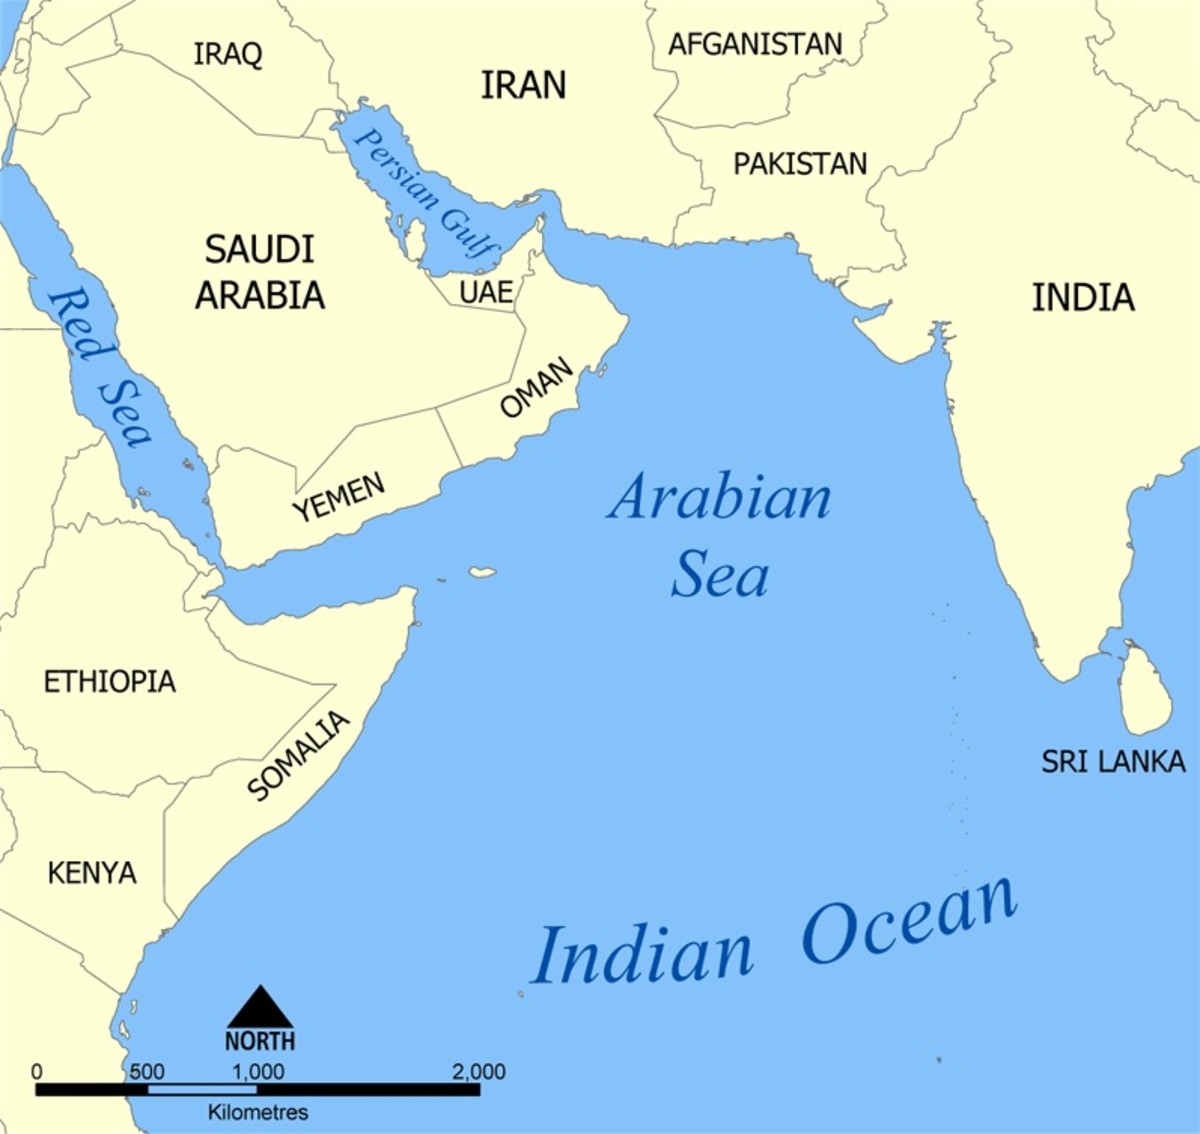 Socotra Island is the small yellow spot in the middle left of this map. It's located in the Arabian Sea off the coast of Somalia, but it belongs to Yemen.